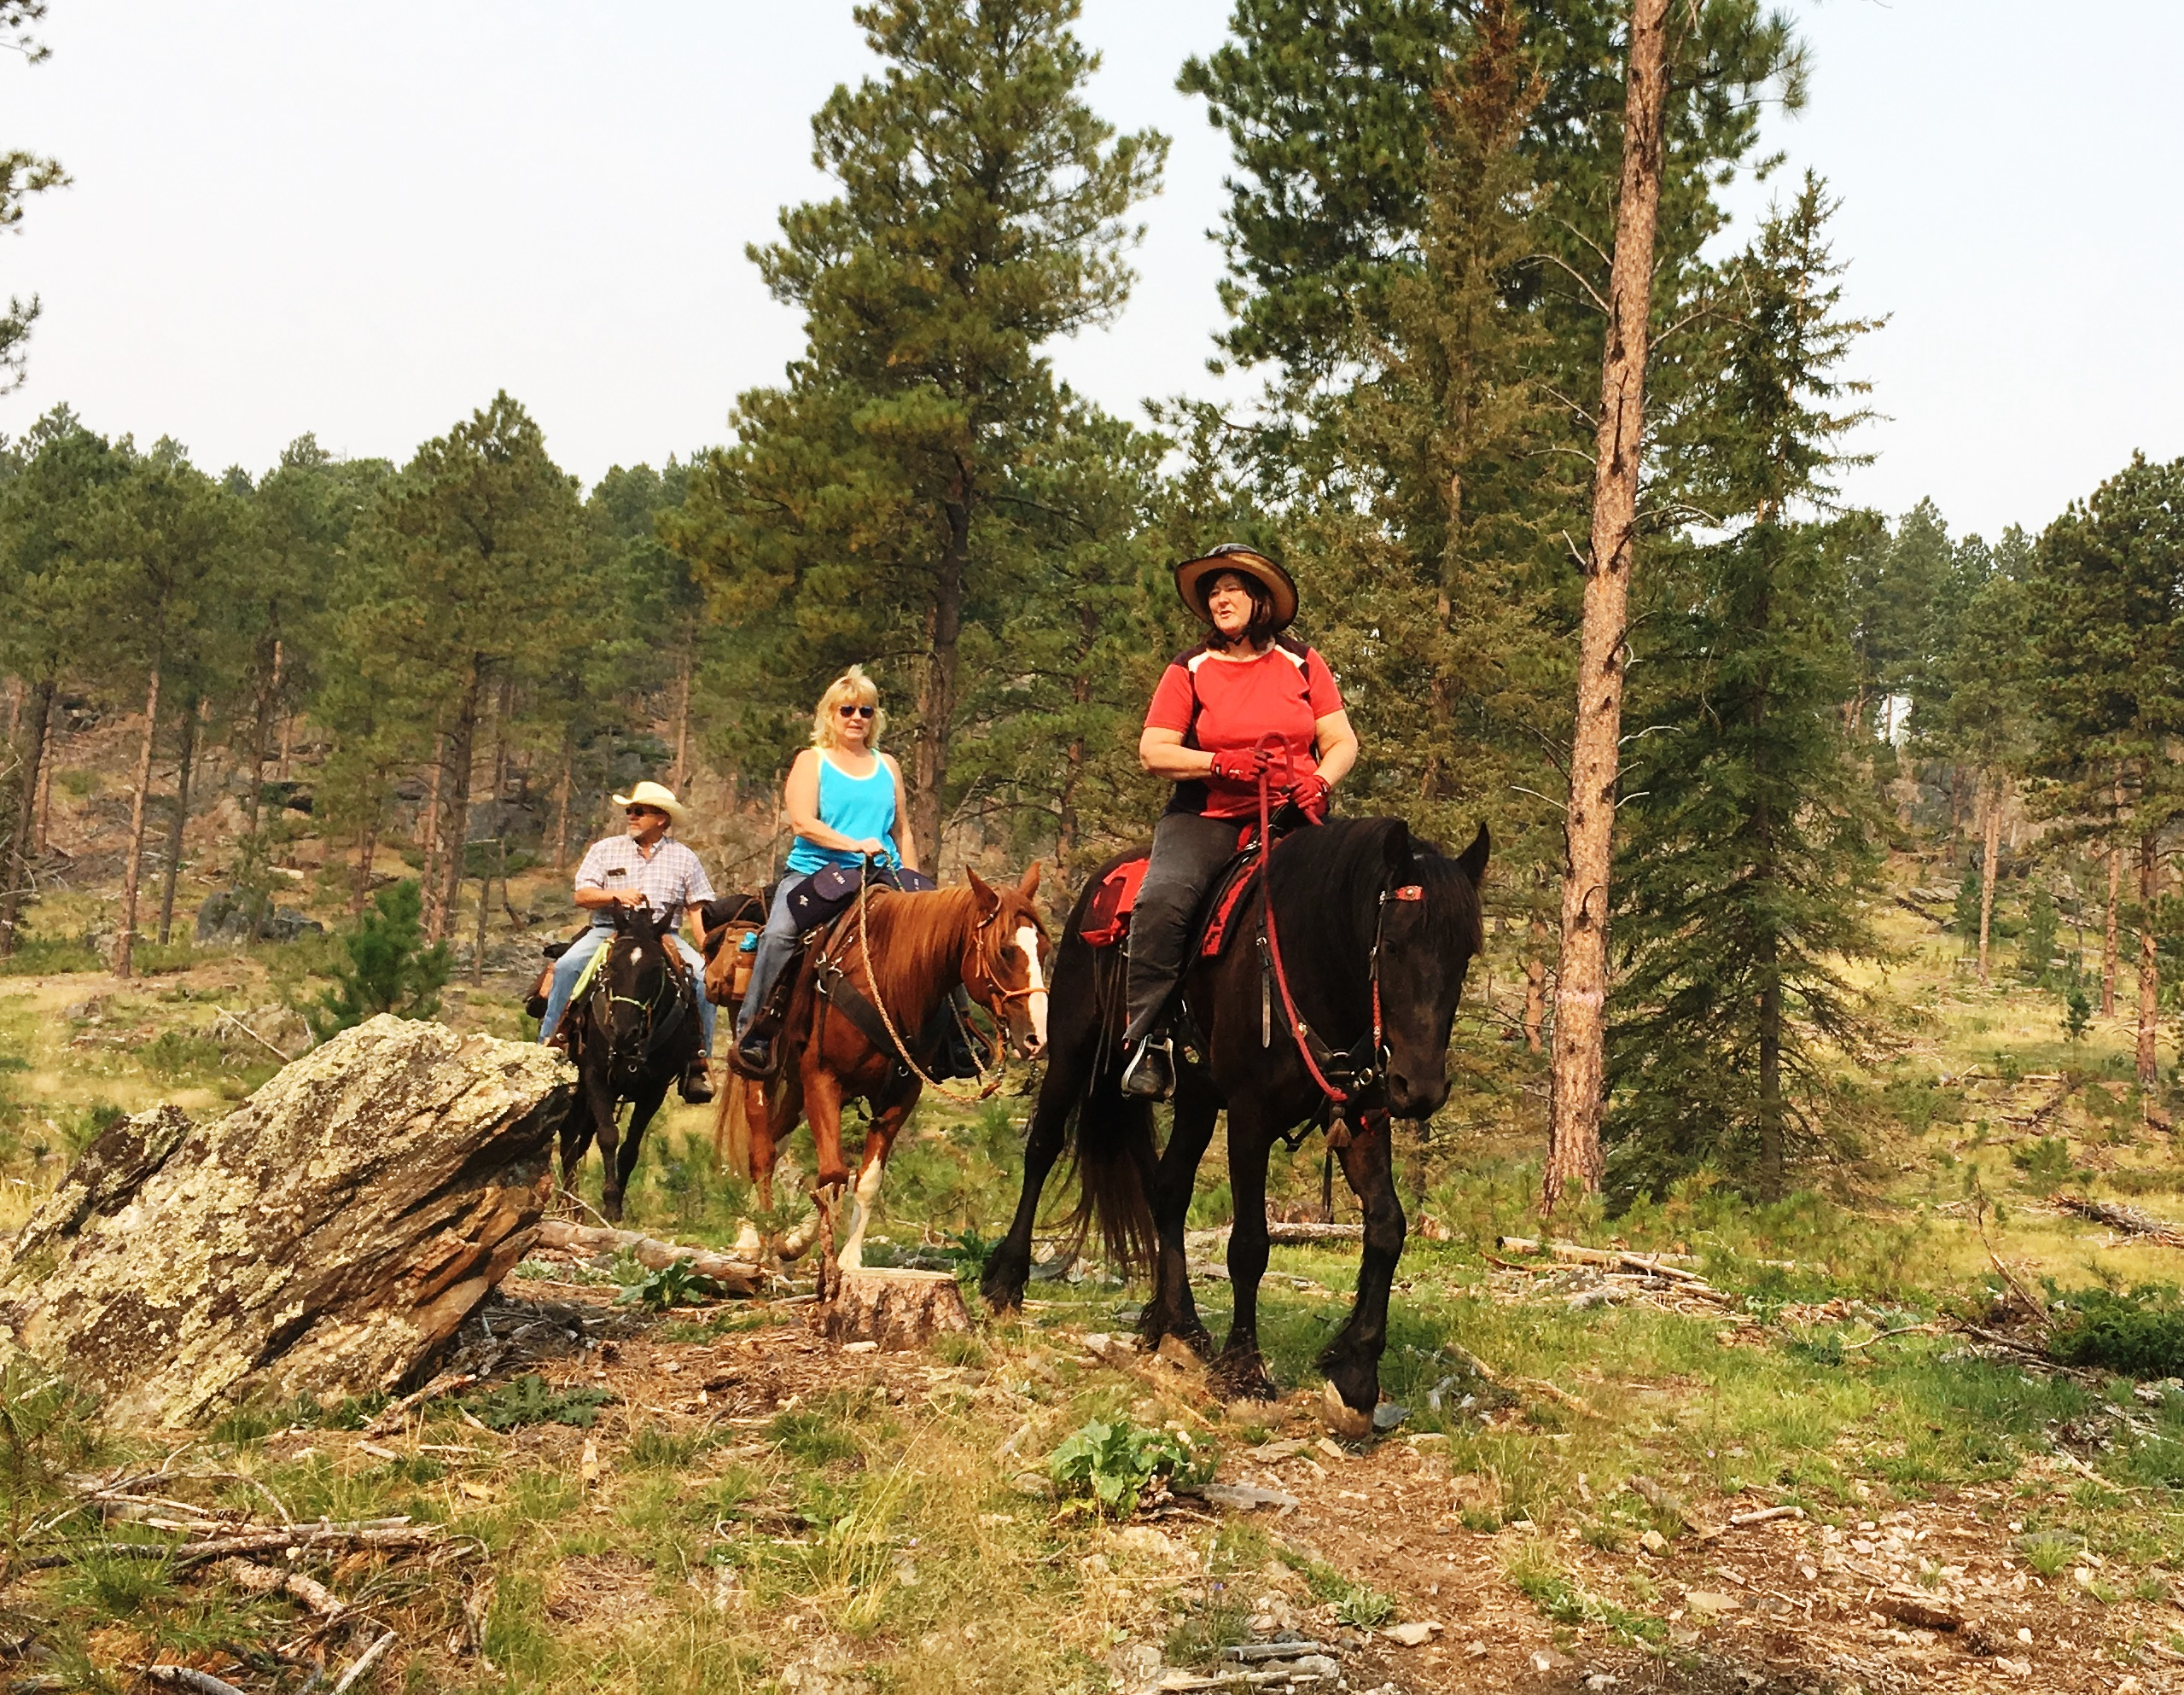 Trail riding in the Black Hills